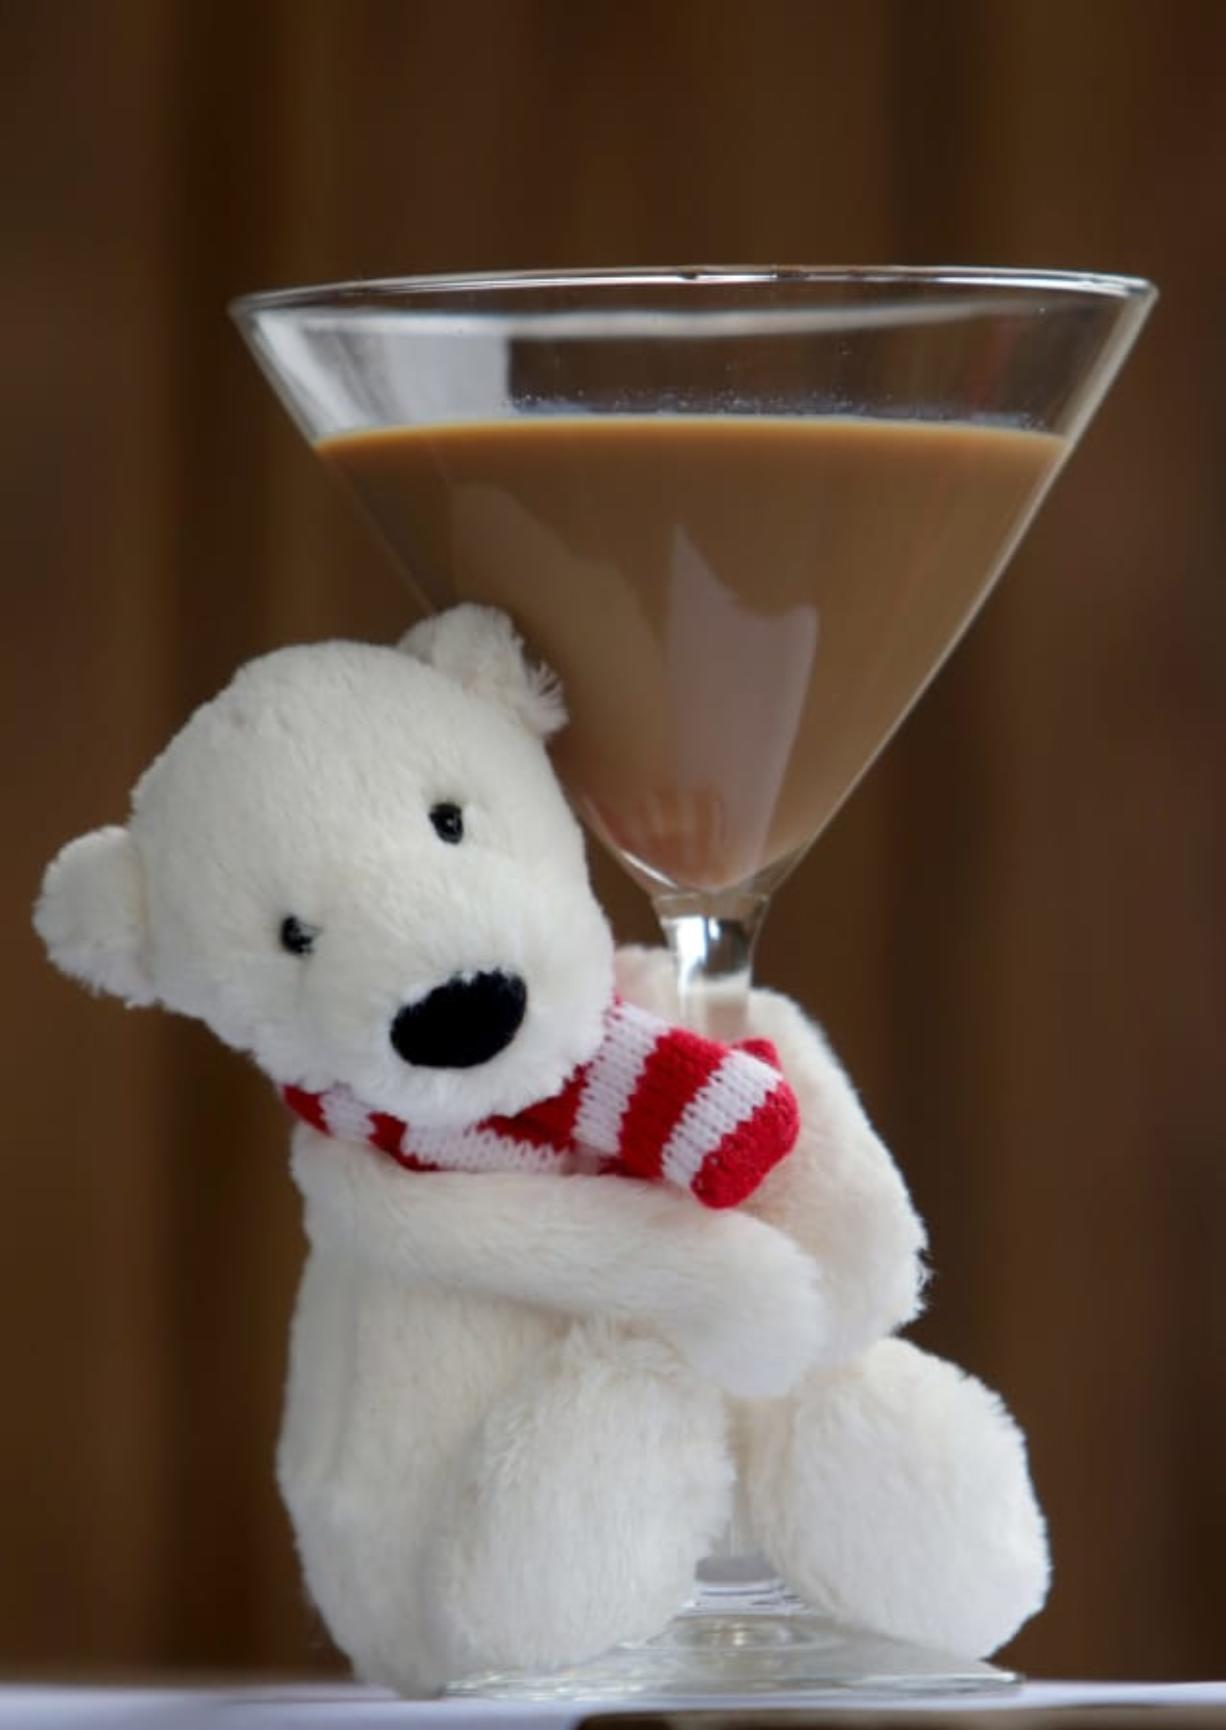 Winter is the time to try warming cocktails like this sweet Peppermint Pattie. (Hillary Levin/St. Louis Post-Dispatch/TNS) (Hillary Levin/St.